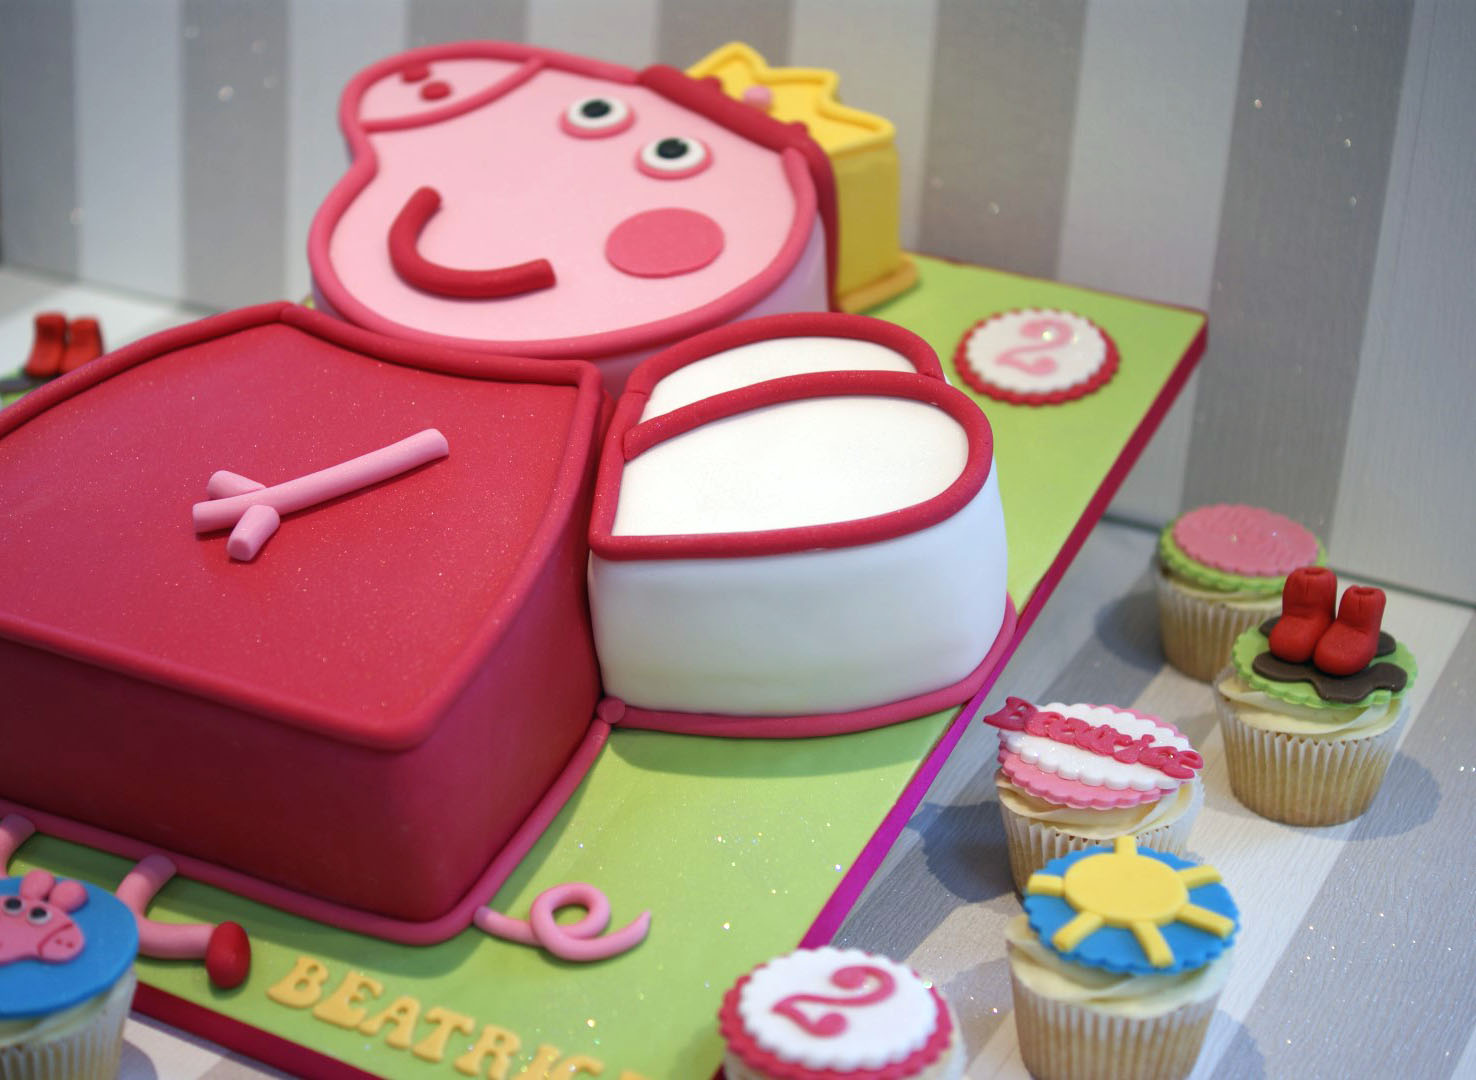 Groovy Peppa Pig 2Nd Birthday Cake With Cupcakes Bakealous Personalised Birthday Cards Paralily Jamesorg